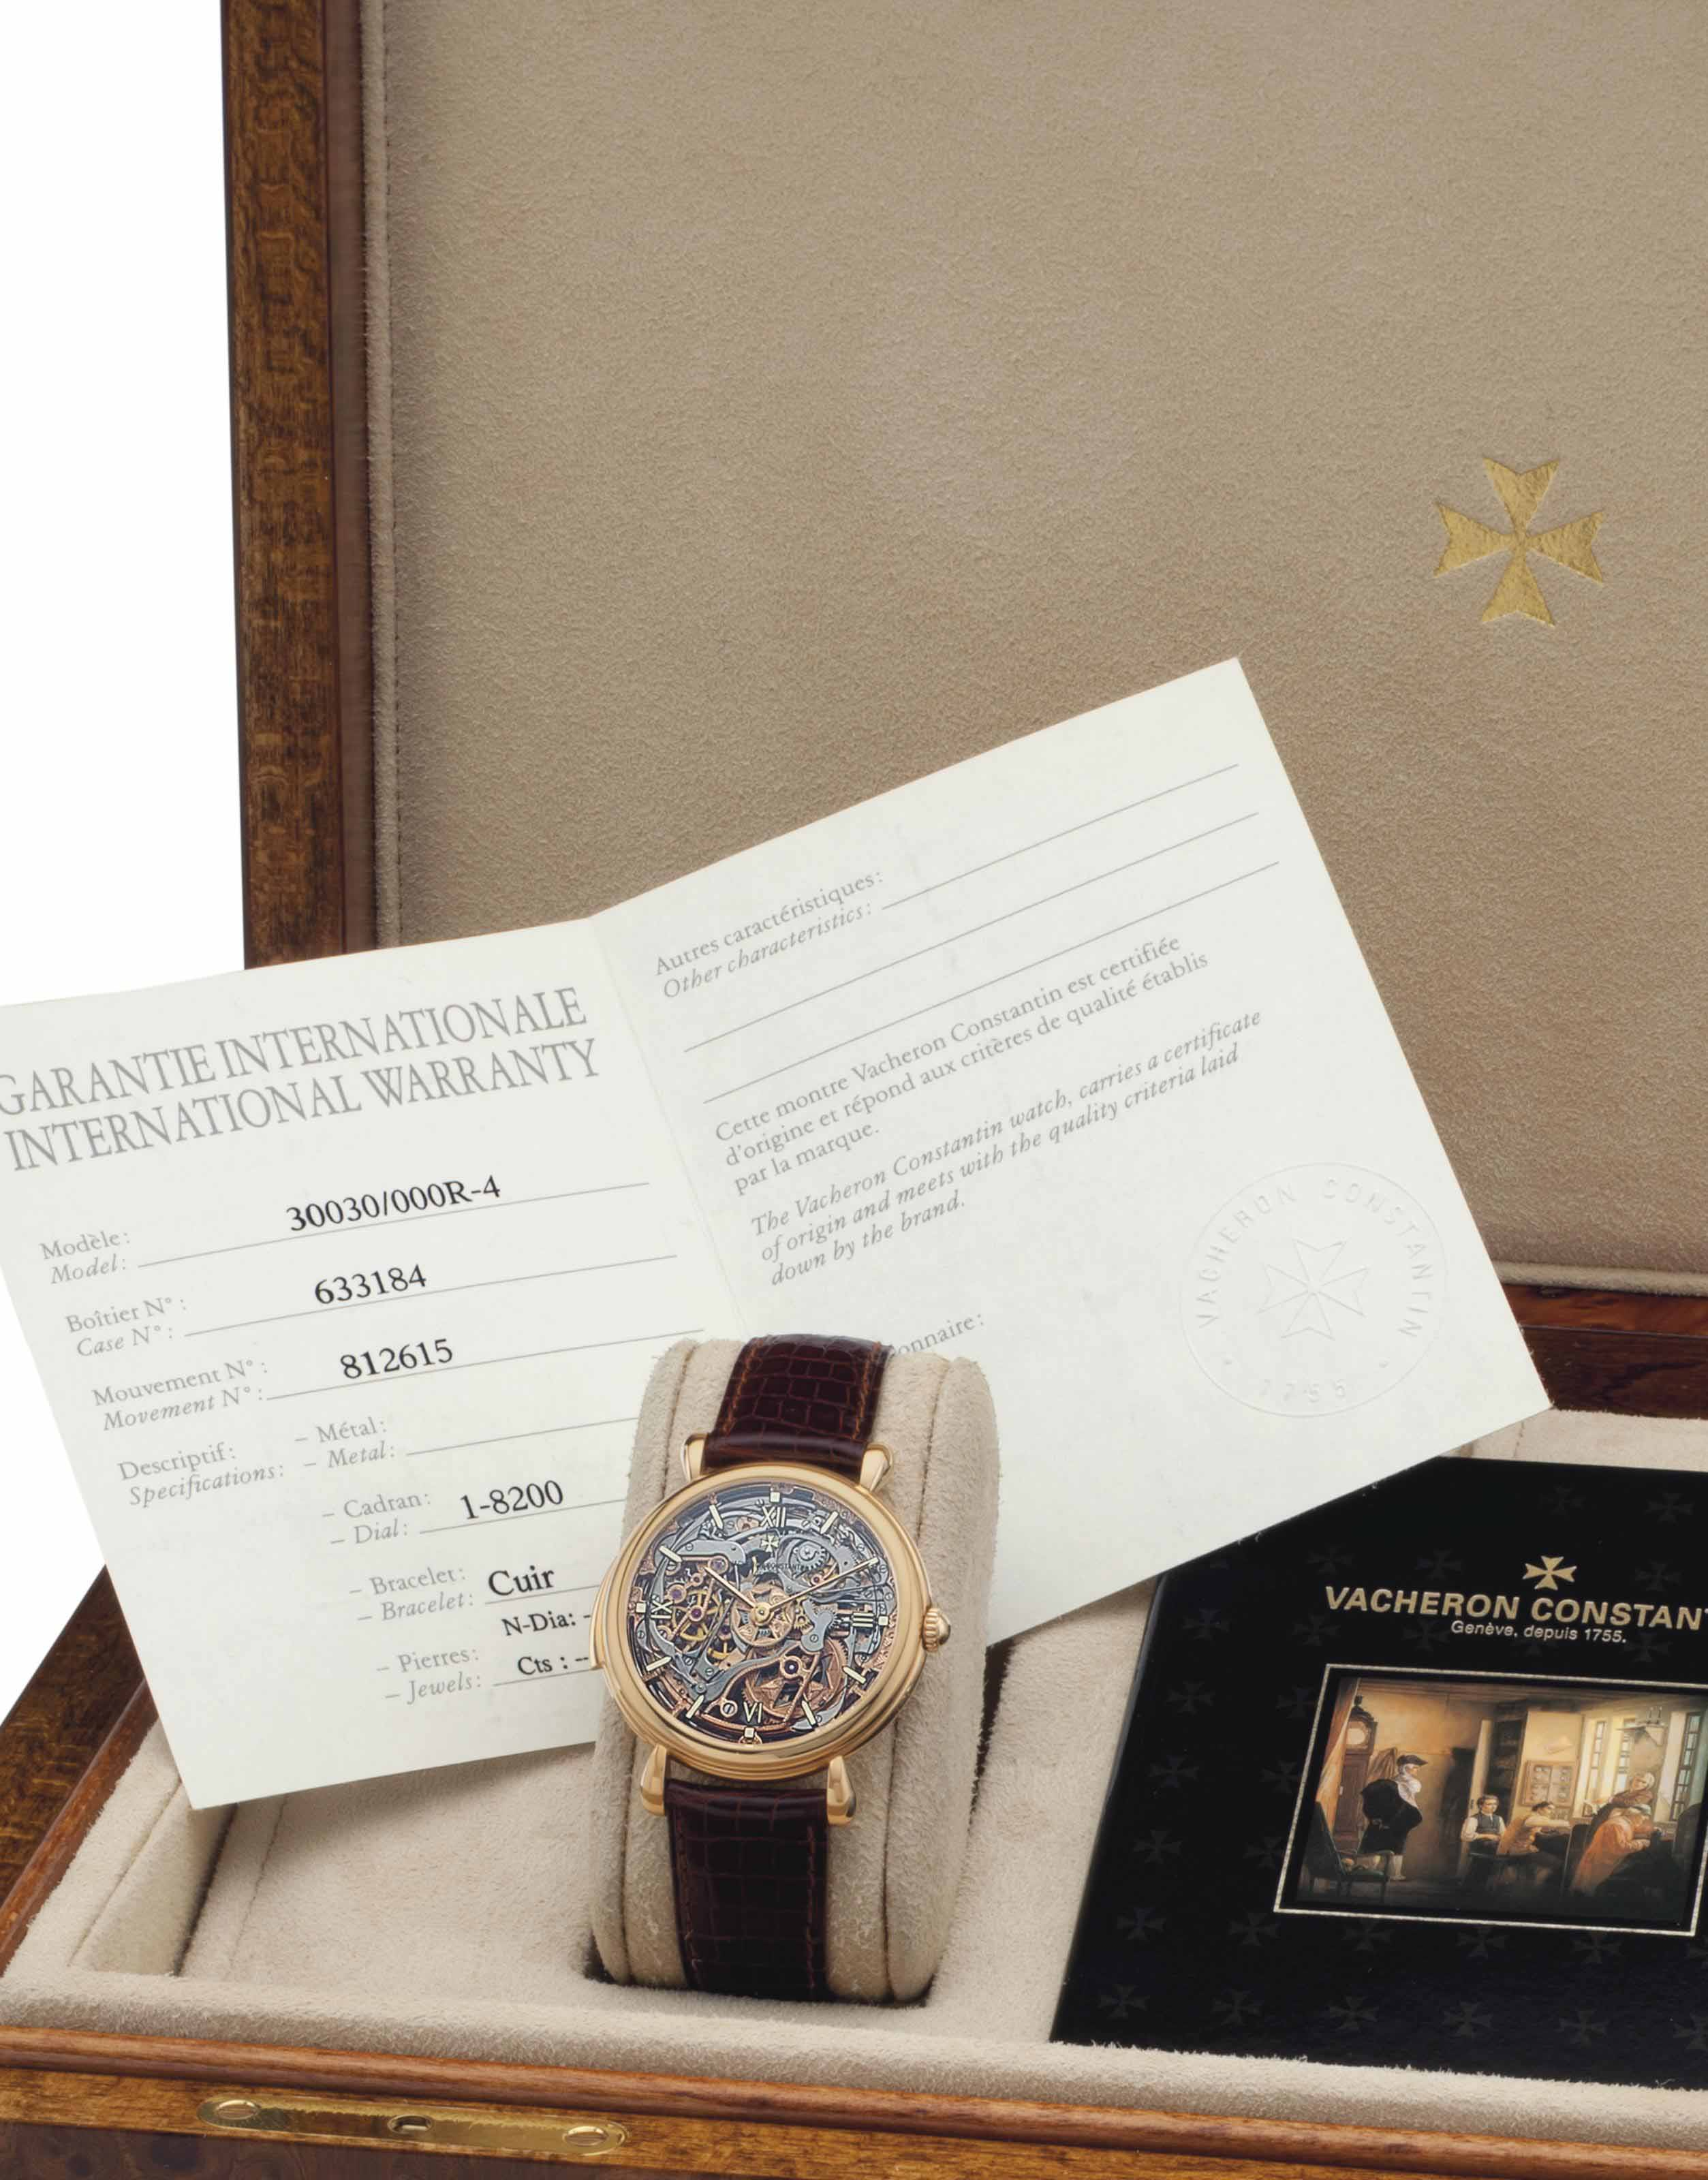 Vacheron Constantin. A Fine and Rare Limited Series 18k Pink Gold Skeletonized Minute Repeating Wristwatch